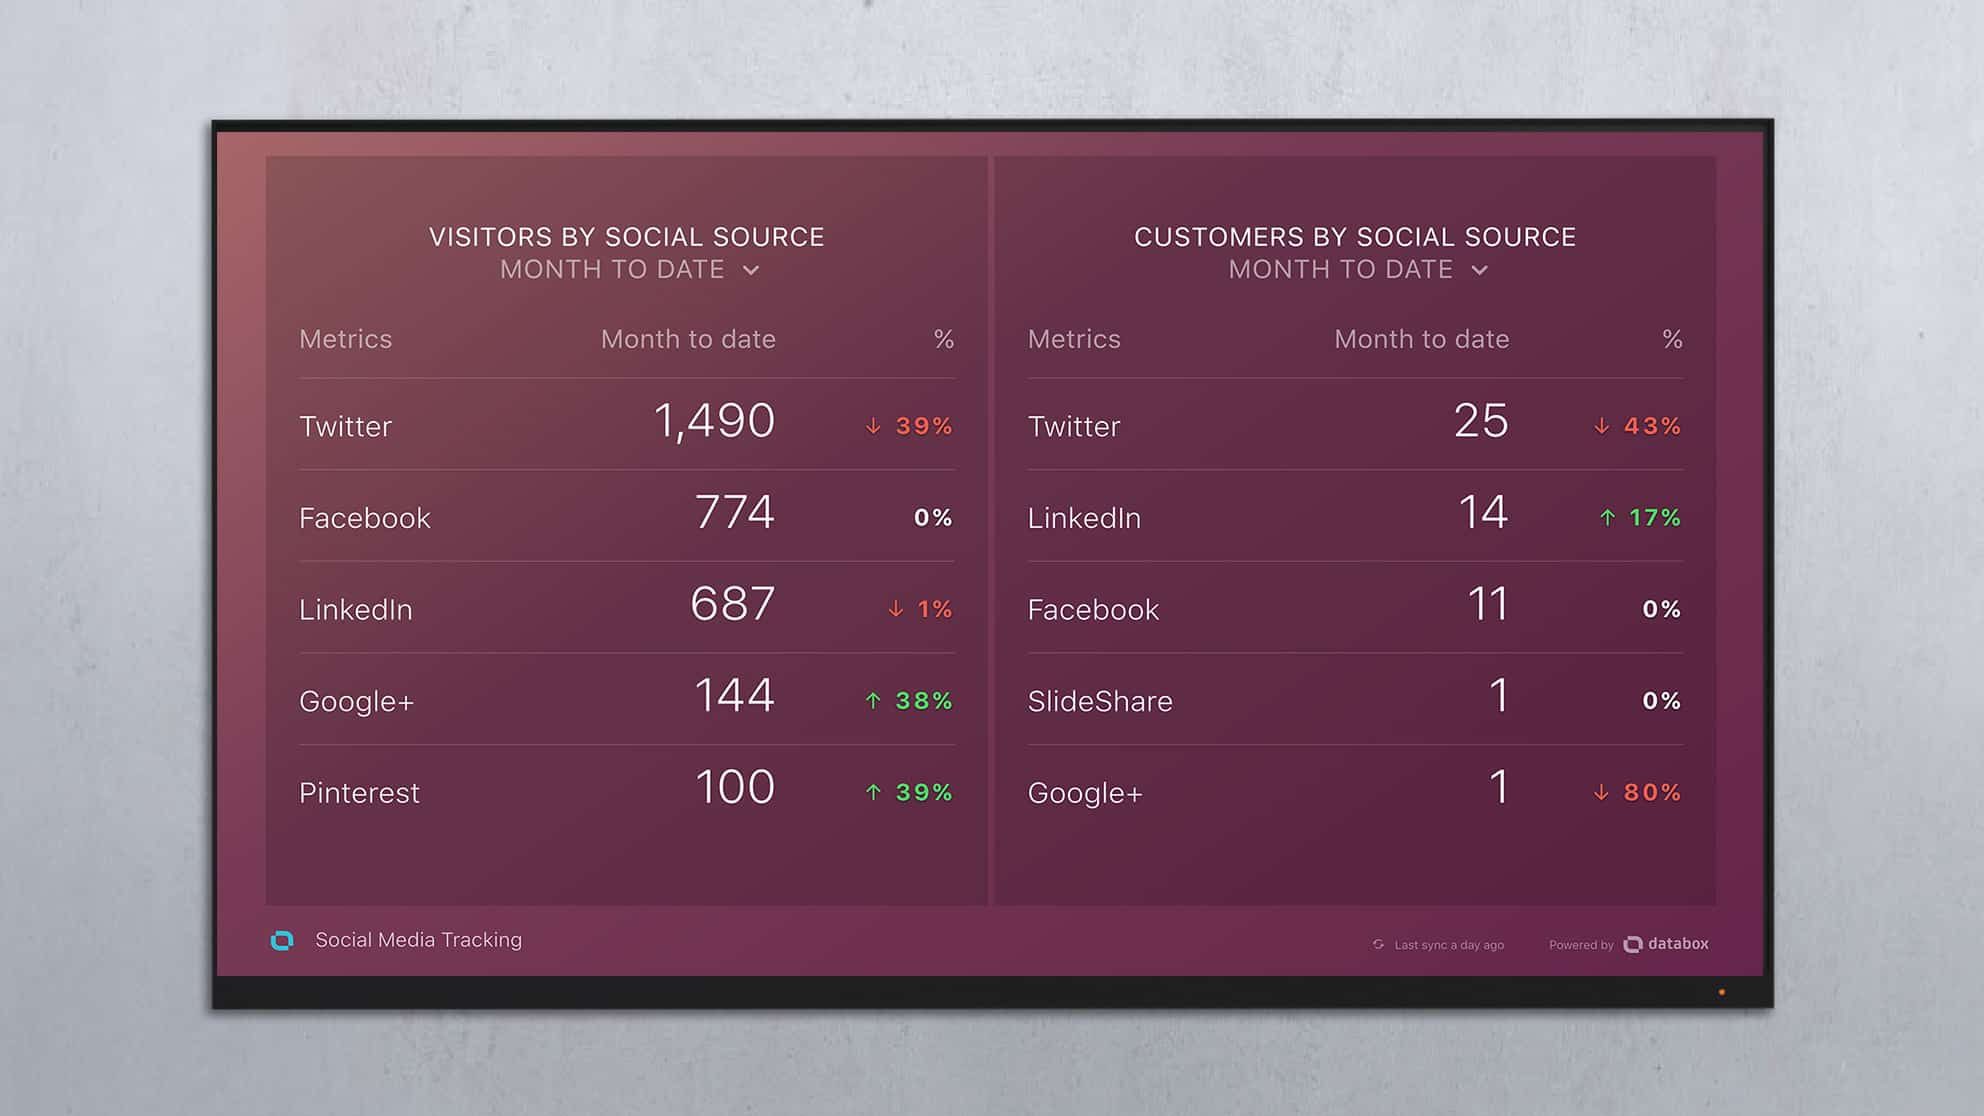 Visitors and Customers by Social Source Dashboard